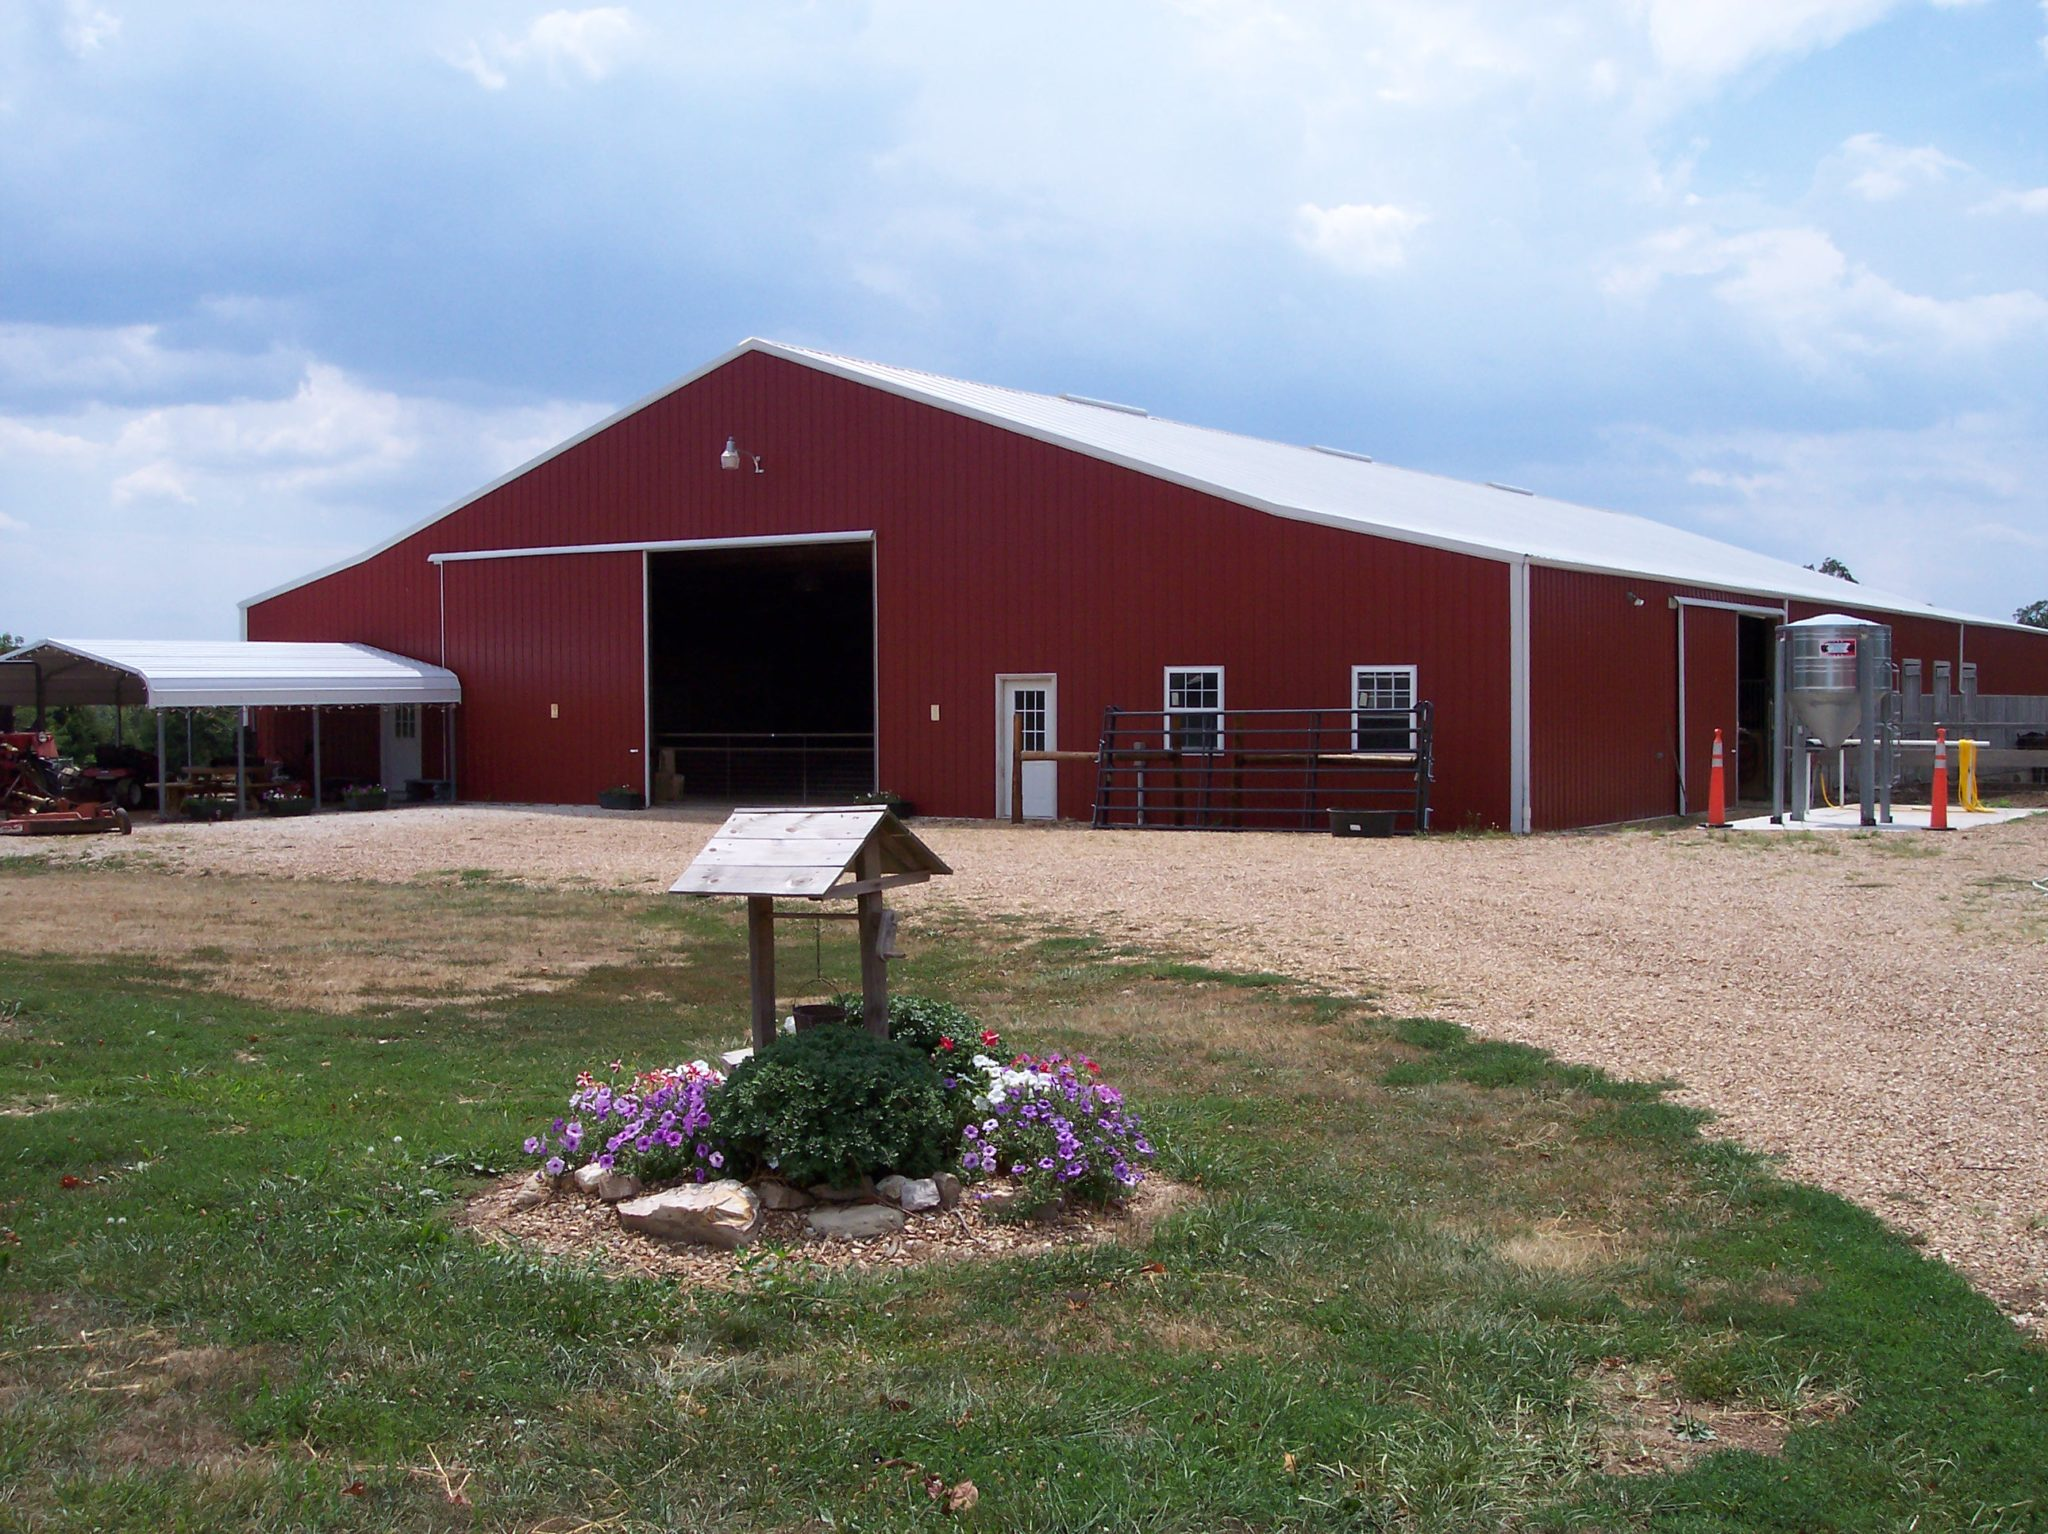 Steel Riding Arenas - Metal Horse Barns on elevated home floor plans, raised hunting, small ranch home plans, raised architecture, raised glass, raised signs, raised gardening, raised kitchen, raised pedestrian crossing, raised wallpaper, raised ranch, raised garage, raised creole cottage, creole cottage home plans, allison ramsey cottage plans, home addition floor plans, luxury custom home plans, raised floor, raised garden, cabin cottage plans,